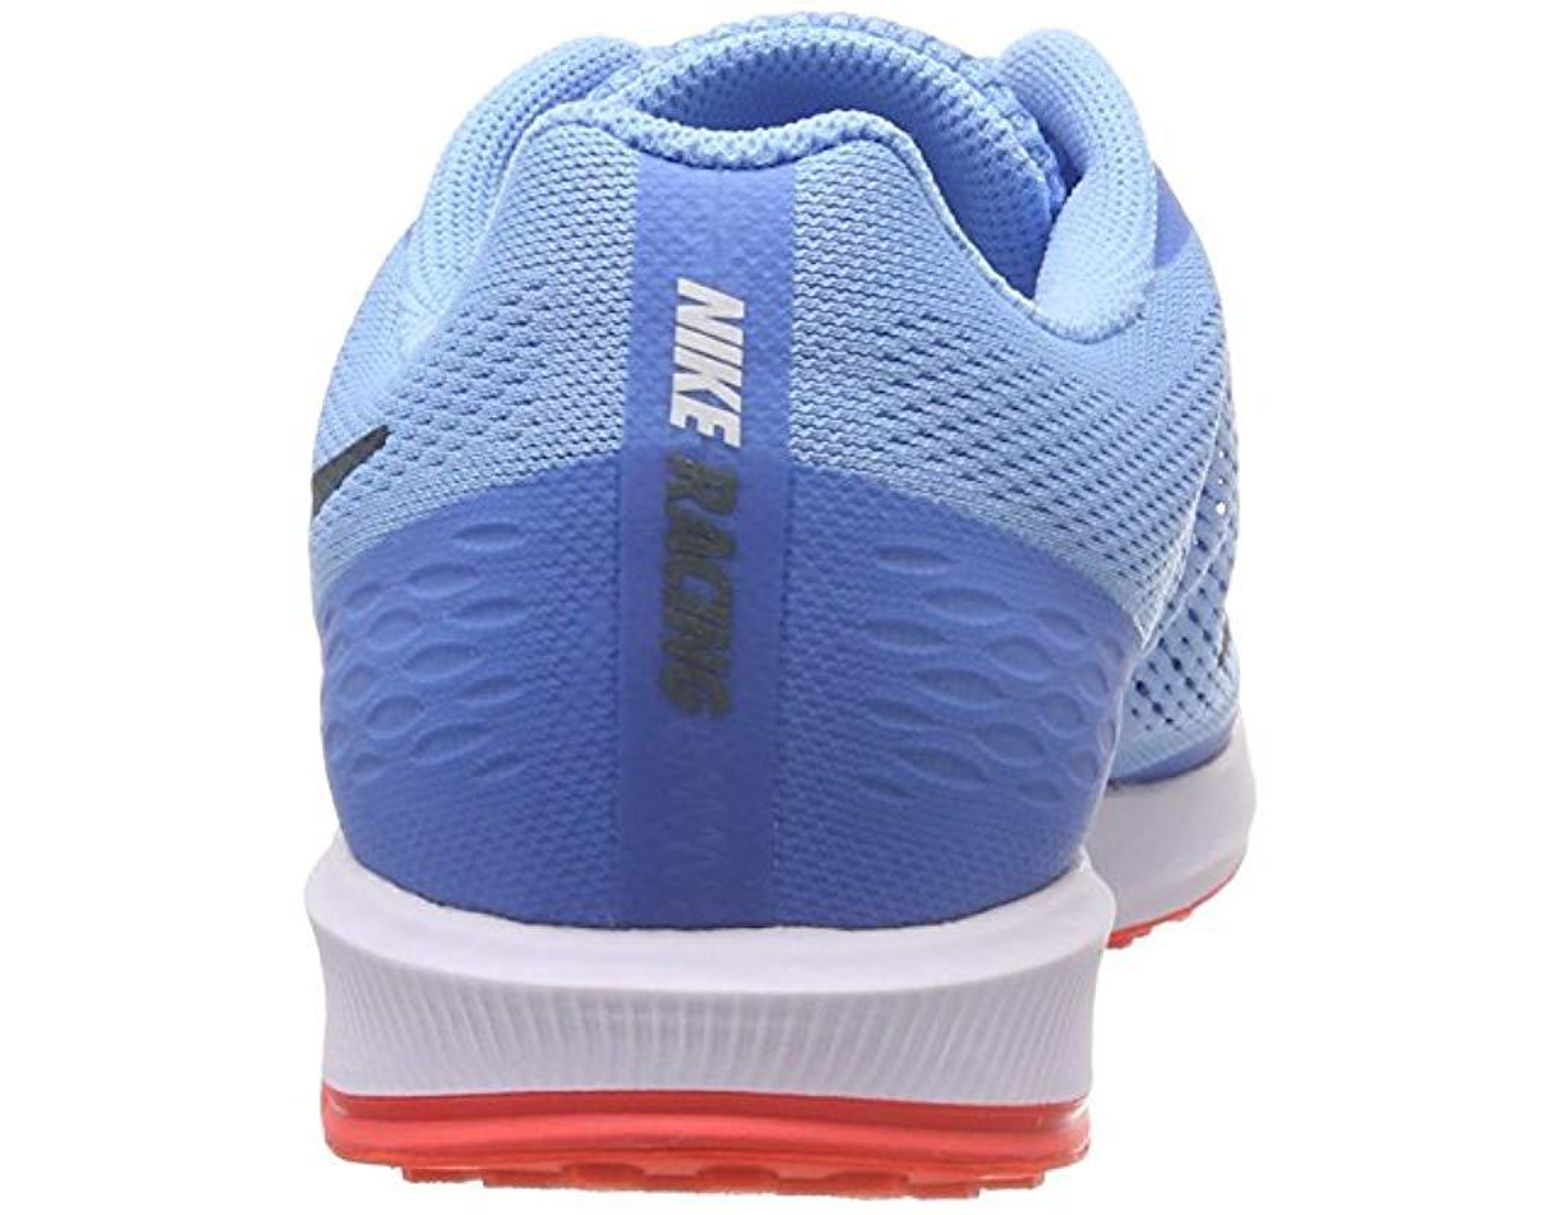 38214b2da8ad3 Blue Unisex Adults' Air Zoom Speed Rival 6 Running Shoes